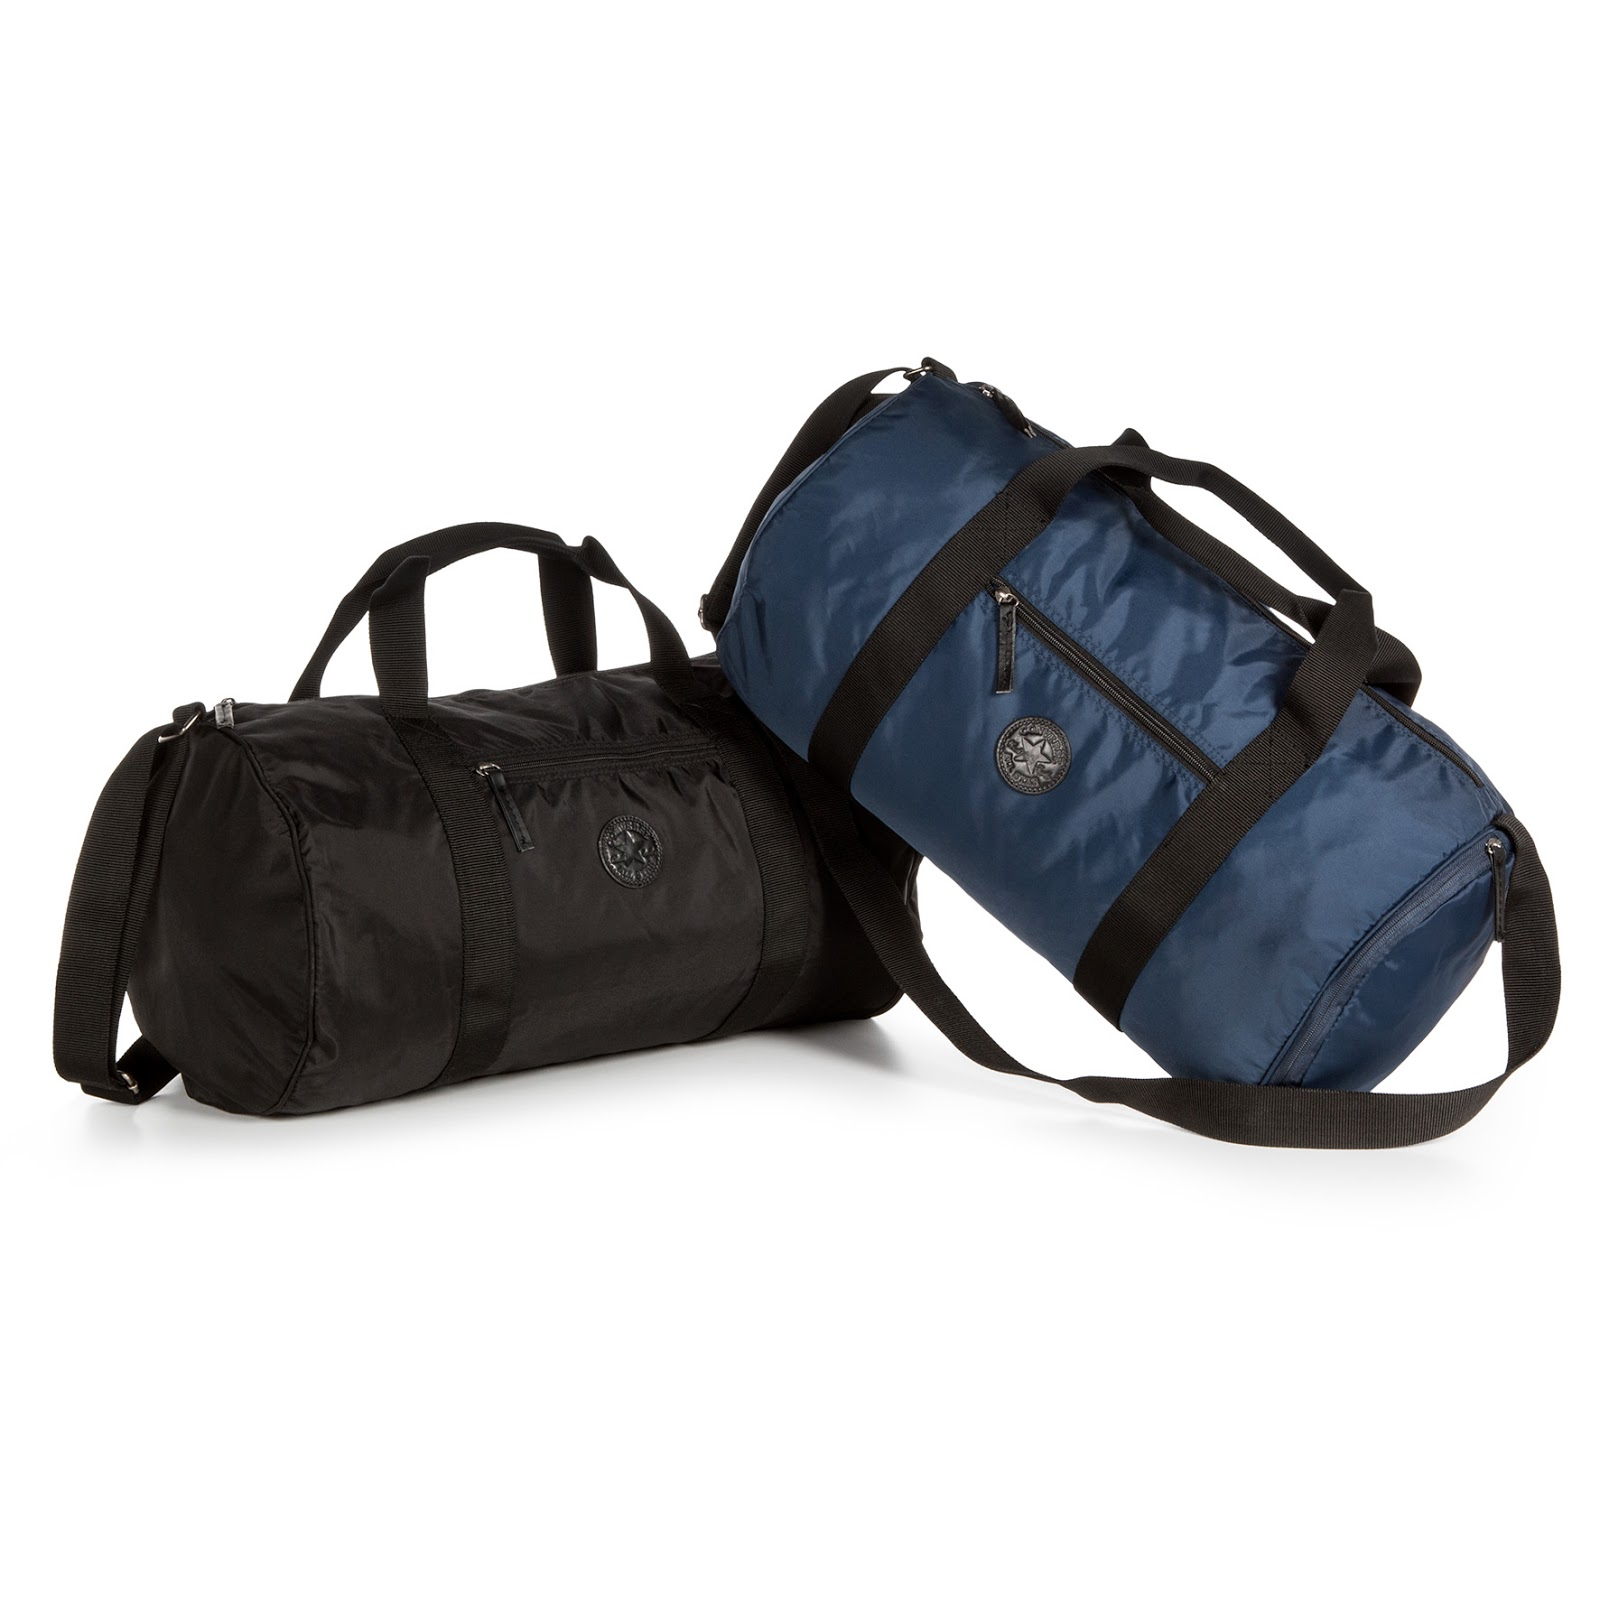 65c81caaf033 With a more spacious main compartment and front utility pocket